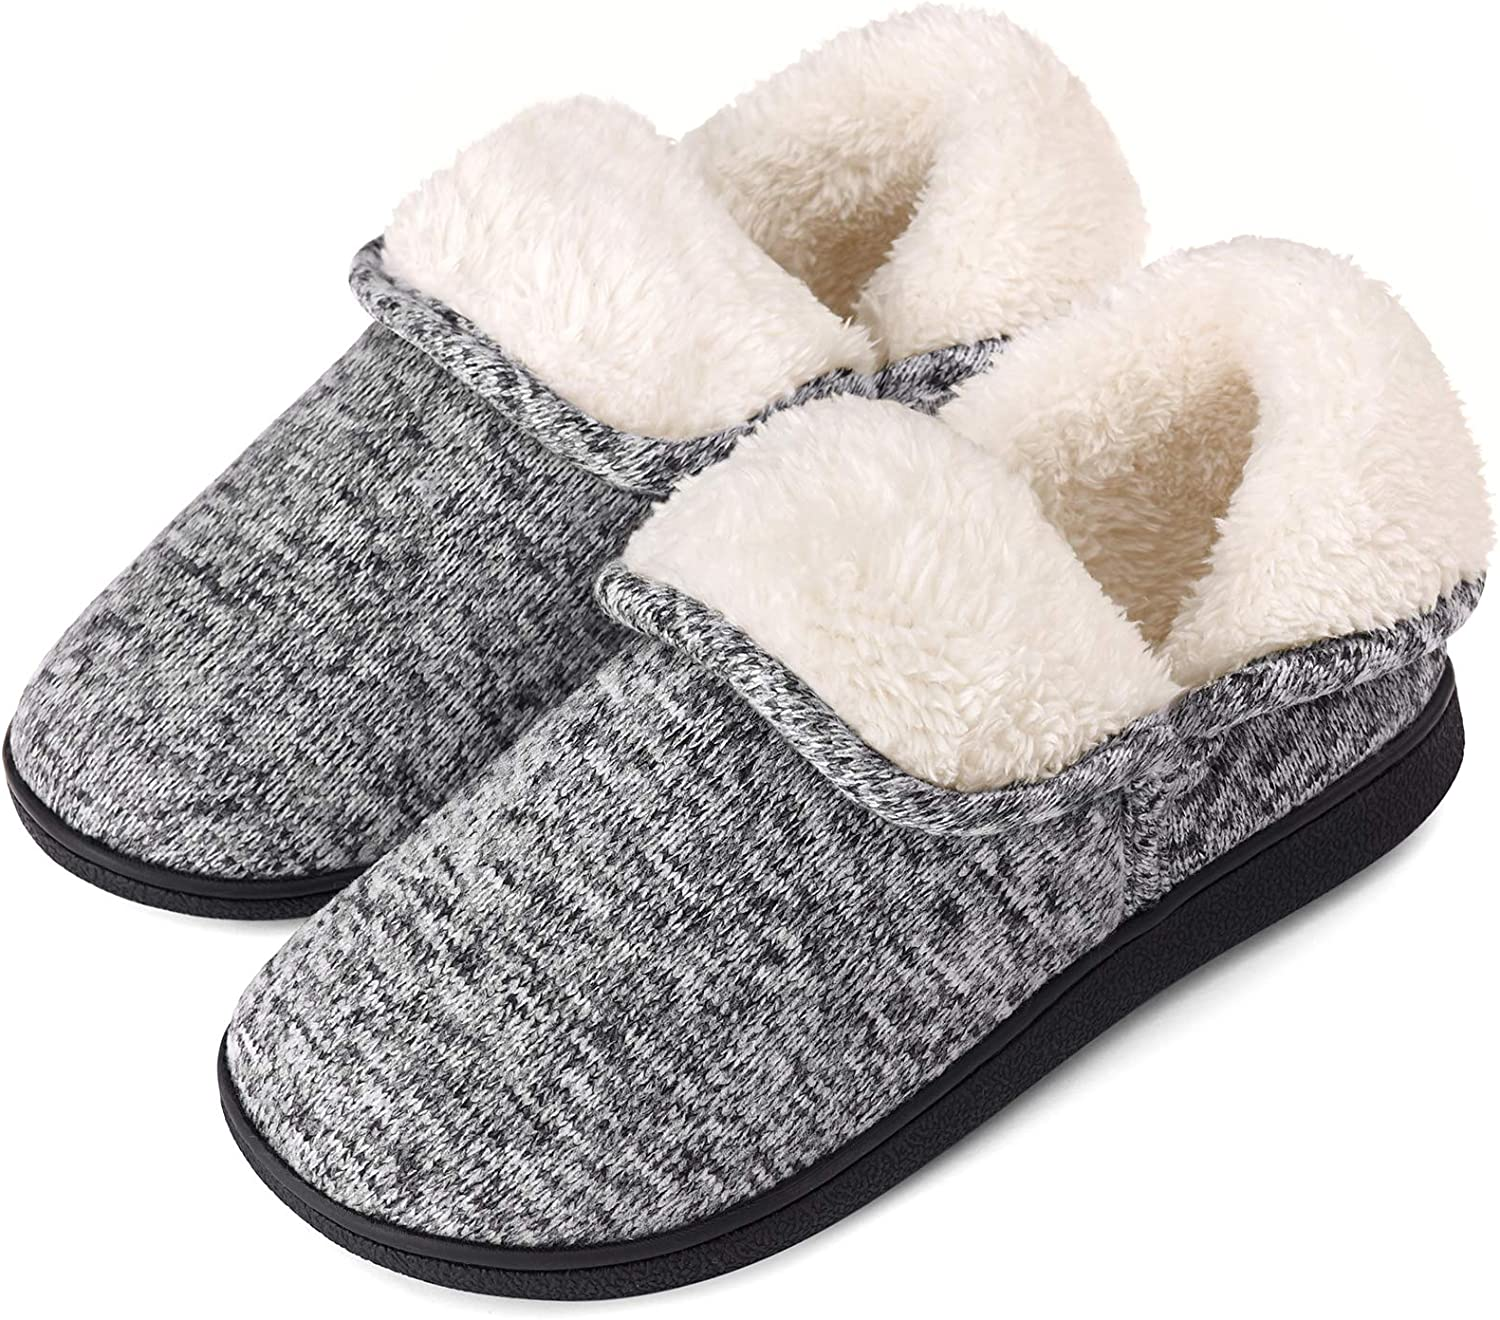 Sales of SALE items from new works Import Women's Slippers Boots Memory Foam Fuzzy Shoes Booties House Win